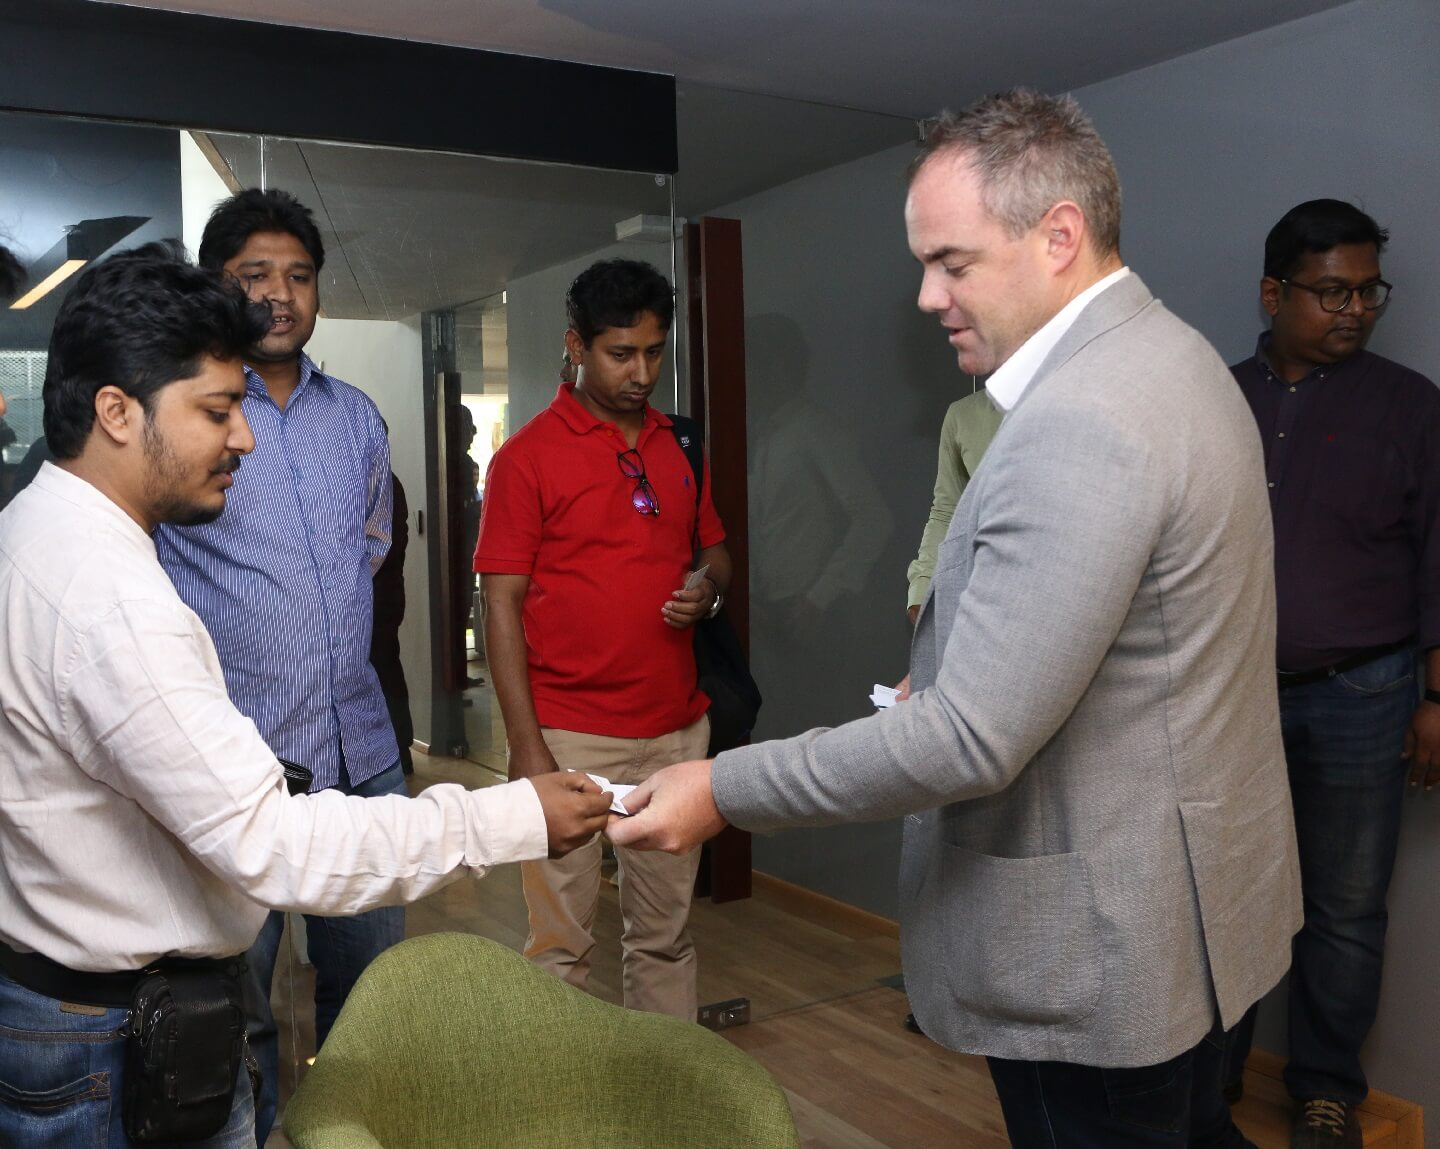 The CEO of Bproperty attending a curious client